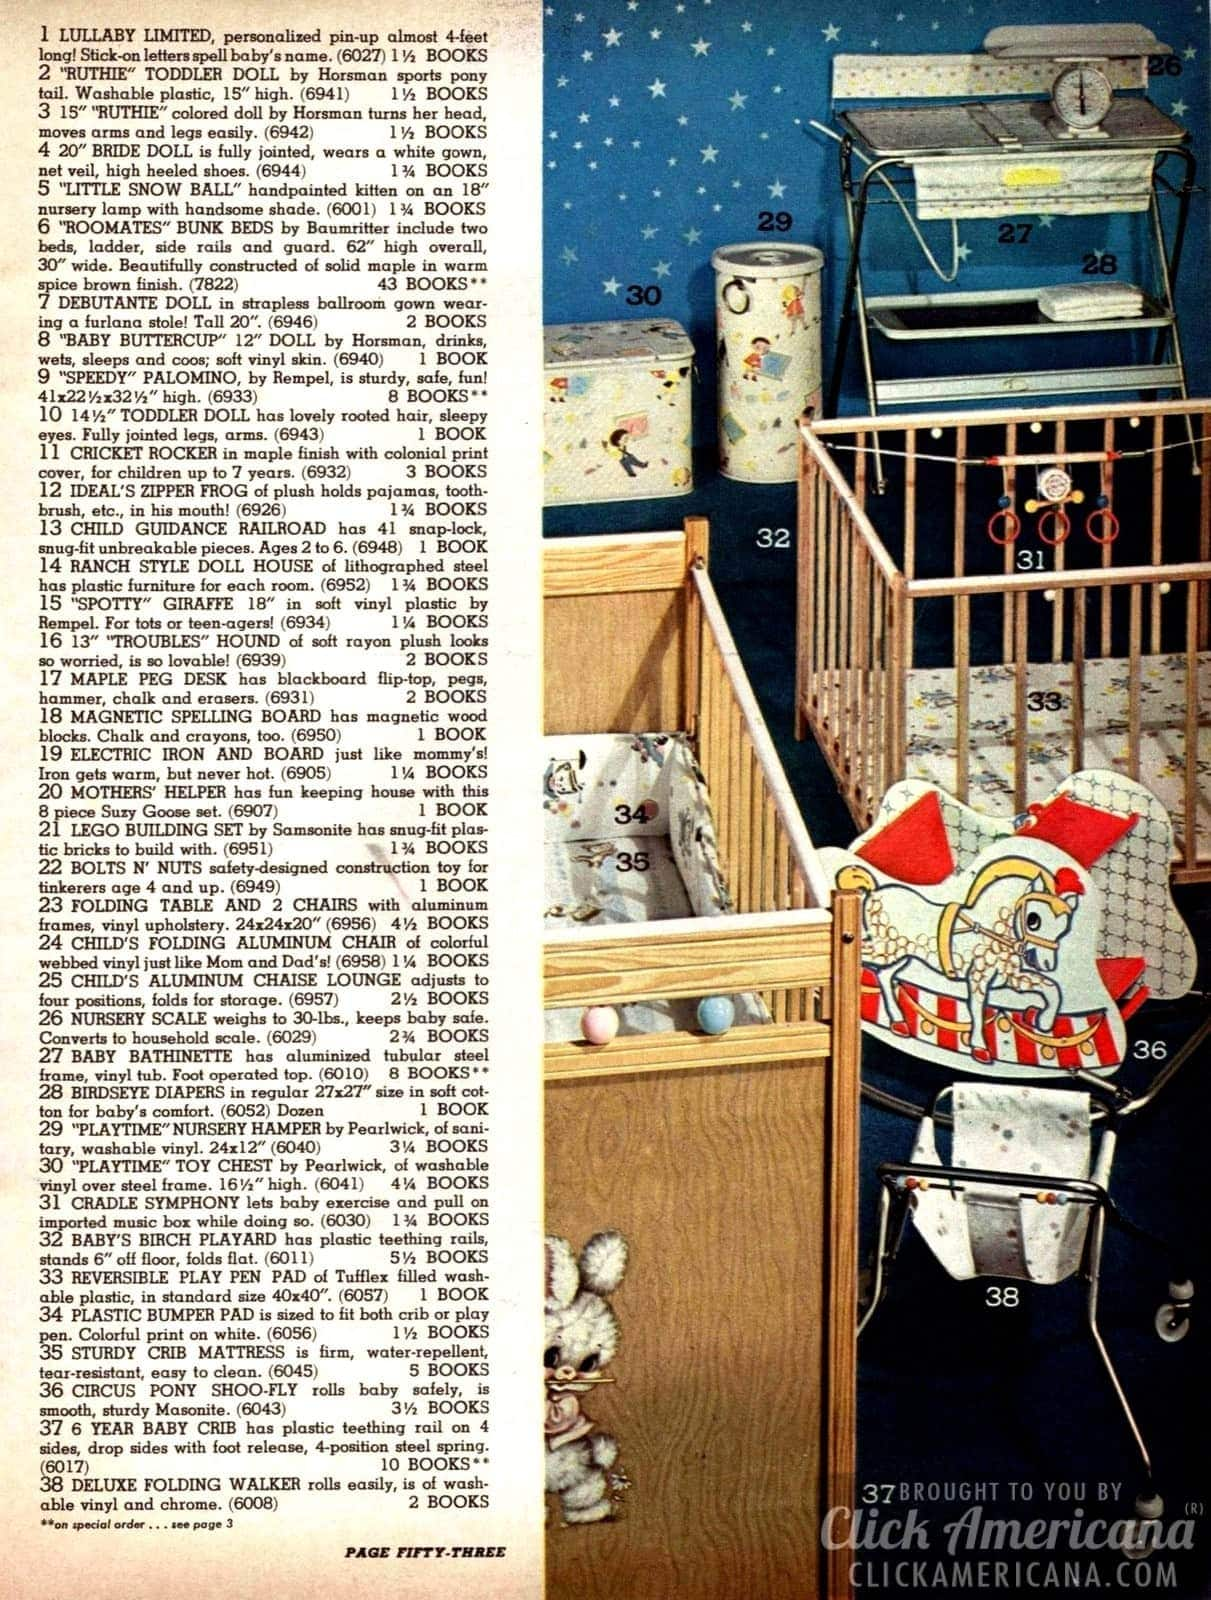 Vintage cribs, playpens, walkers and more for babies in the sixties